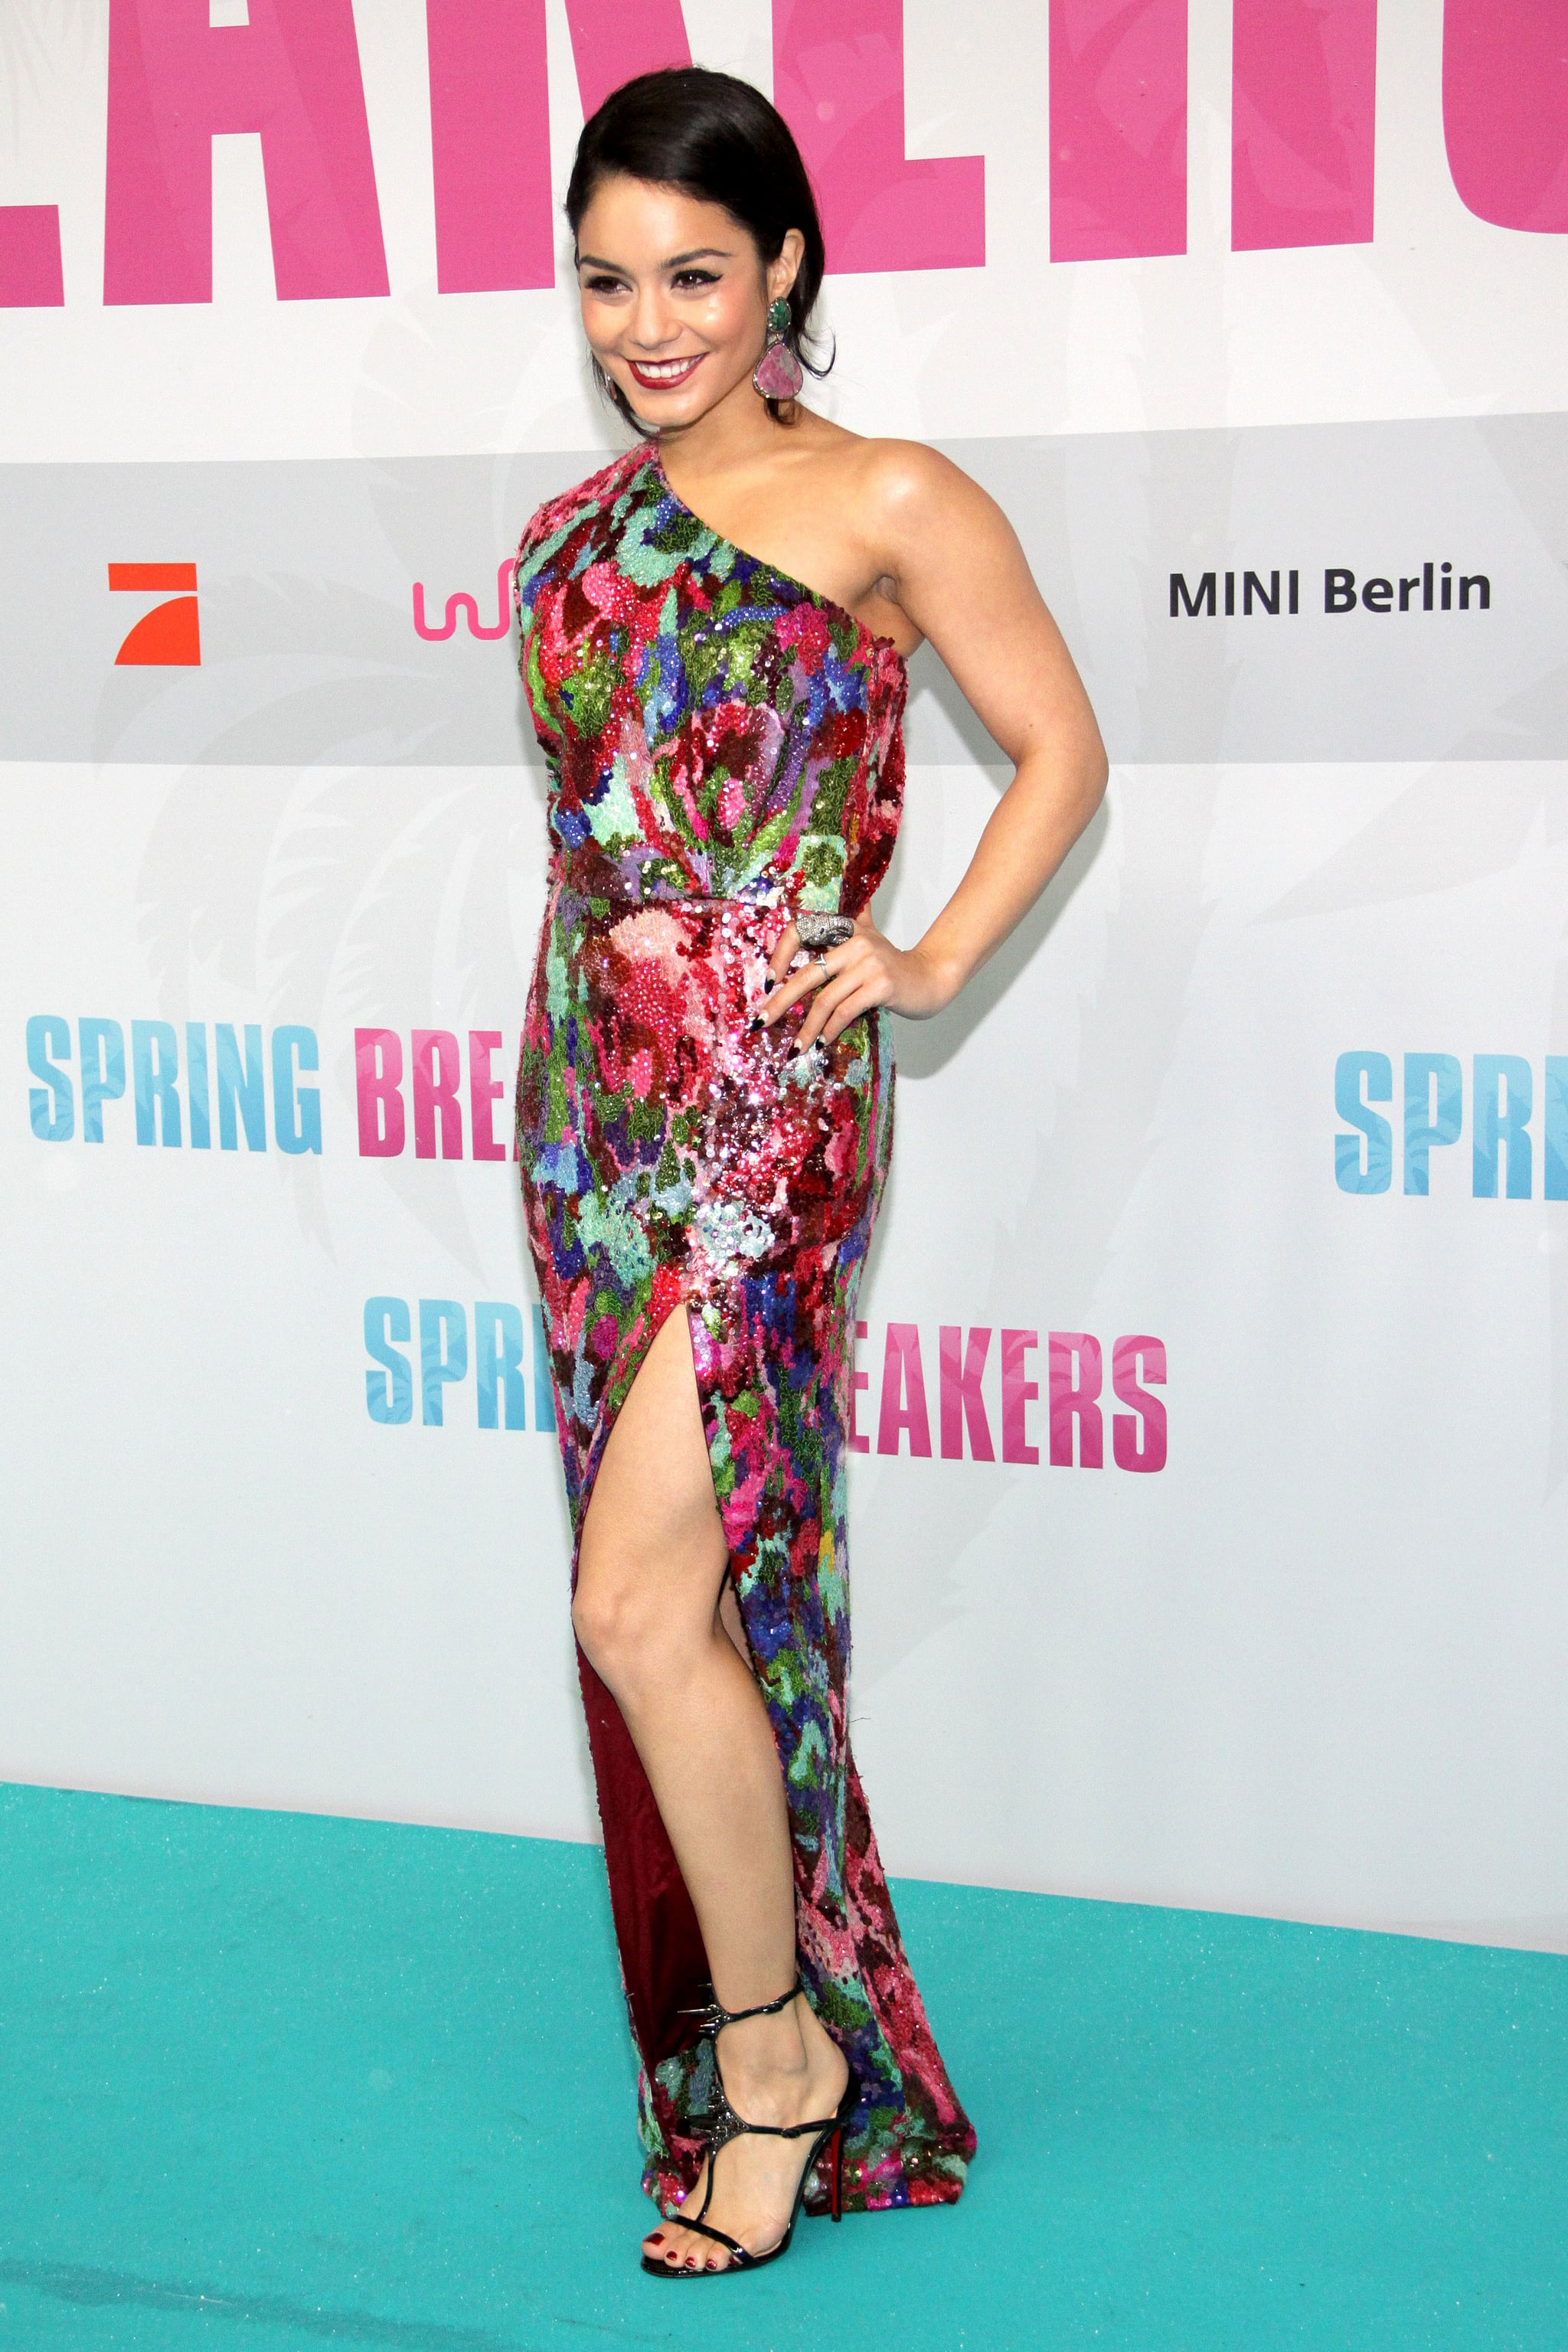 Vanessa Hudgens chose a colorful one-shoulder Naeem Khan sequined gown with a thigh-high slit paired with Christian Louboutin sandals for the Berlin premiere of Spring Breakers.